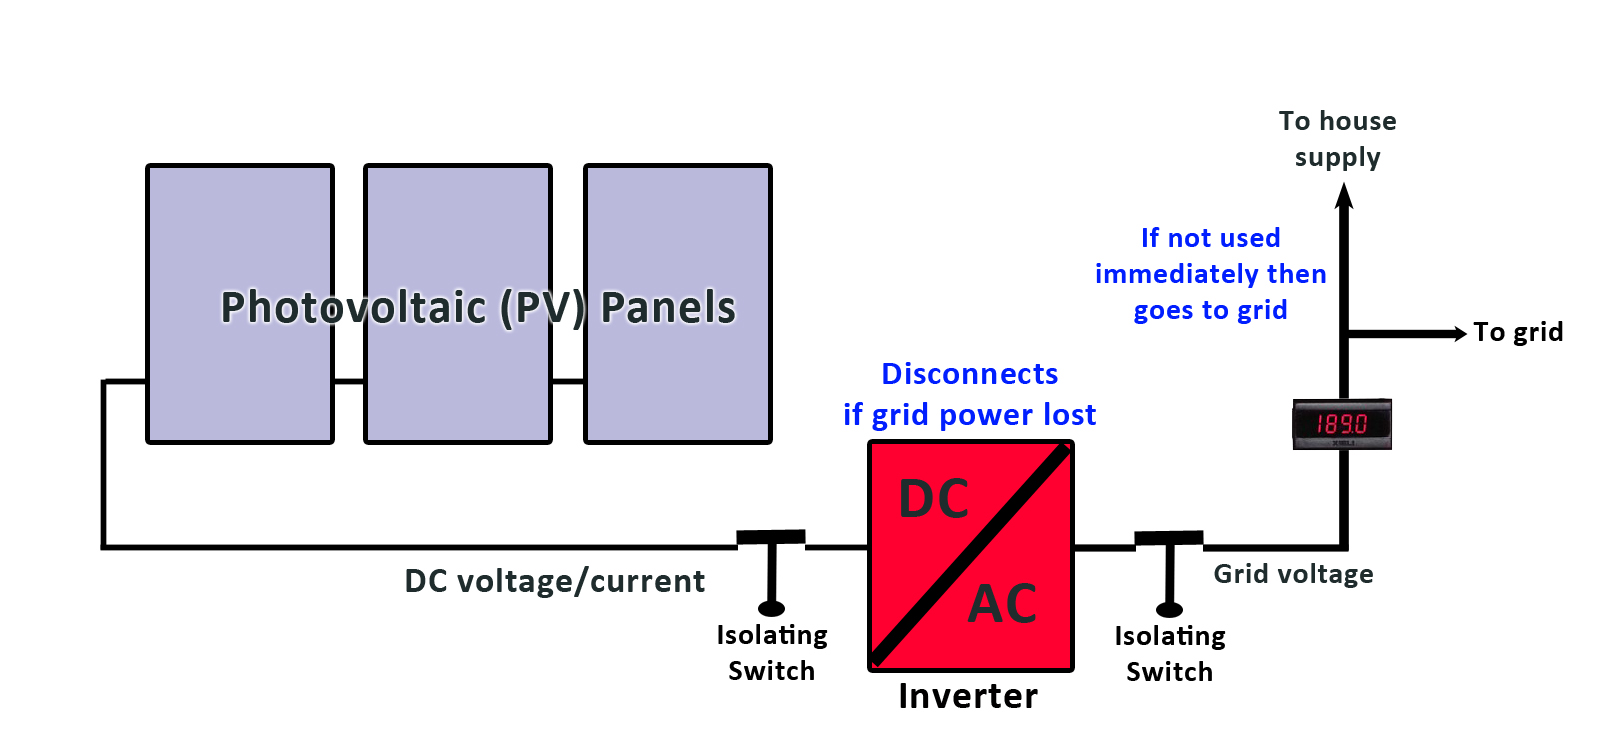 Solar Pv Diagrams Wiring Panel Jules Verne 2 0 Wave 2017 Rh Electricbluetesla Org Photovoltaic Diagram System